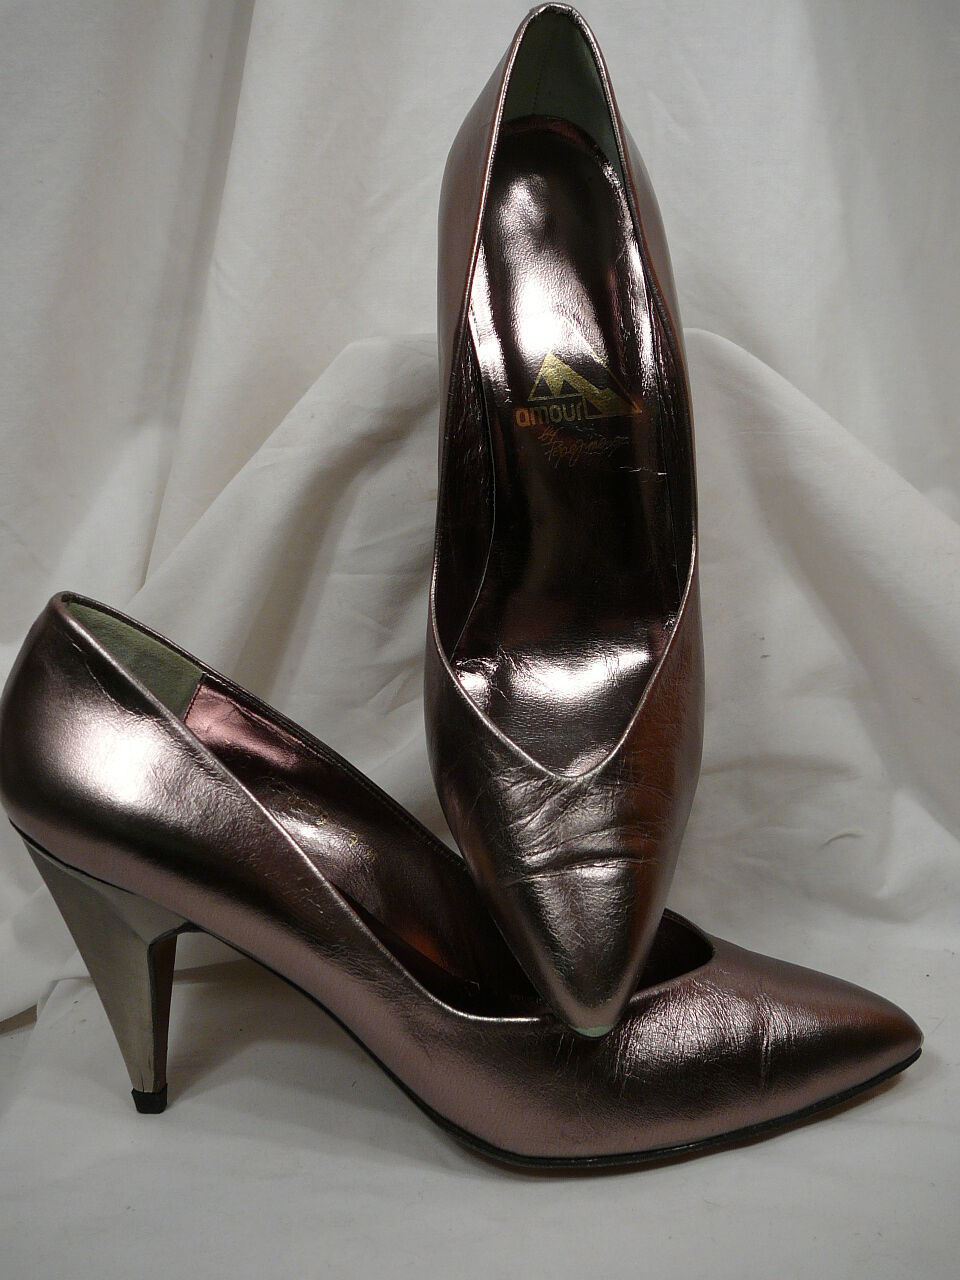 USED Pepe Jimenez Amour Pewter Leather Stiletto Heels 9M MADE IN SPAIN